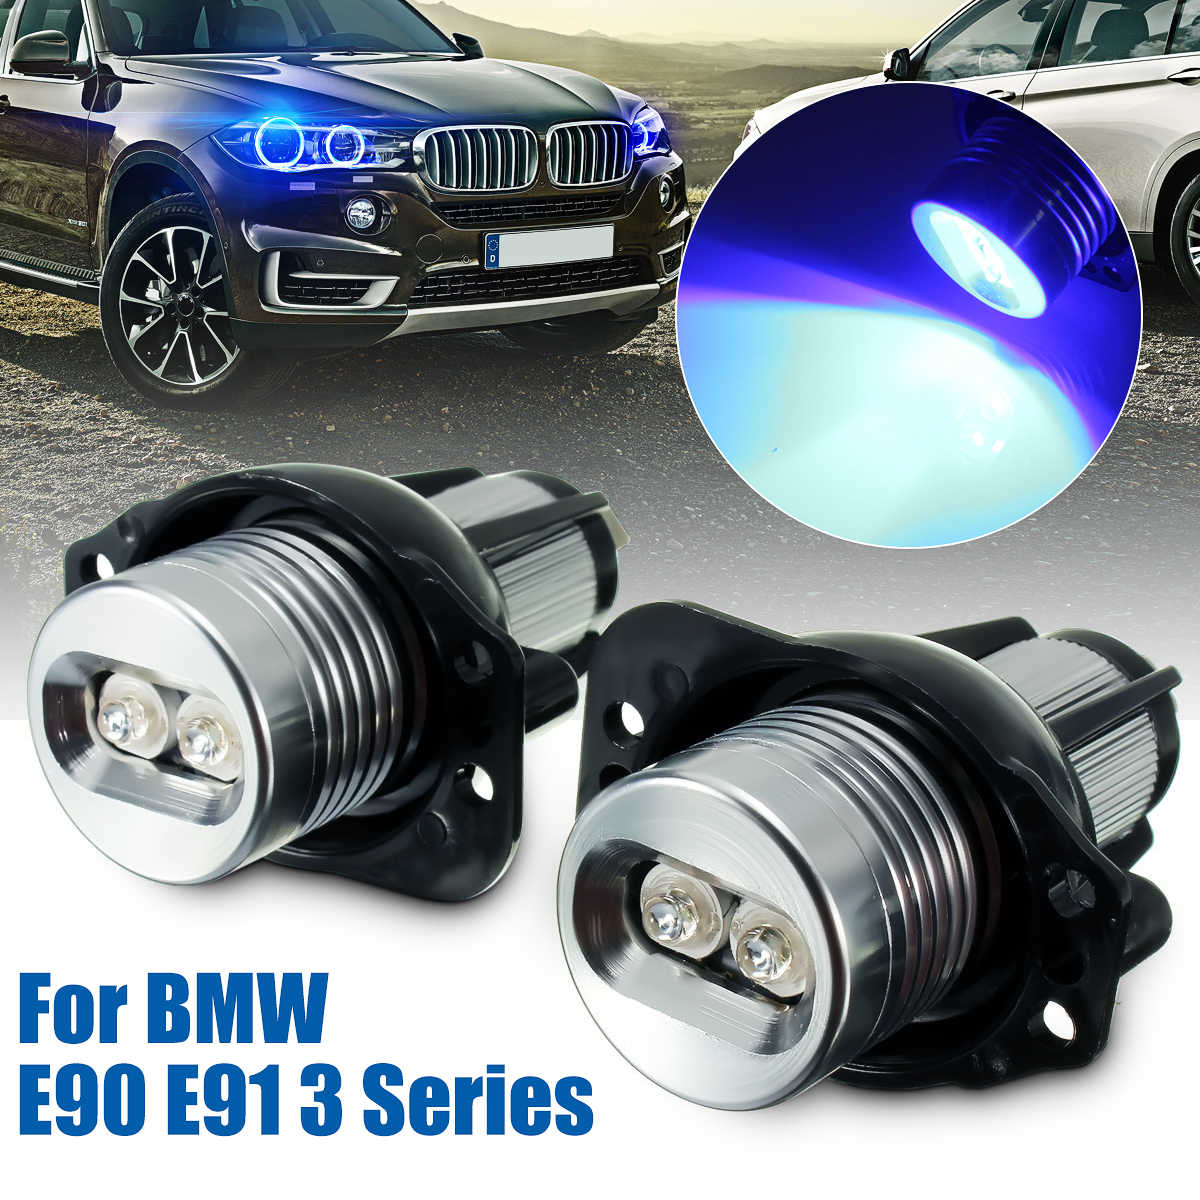 medium resolution of for bmw e90 e91 3 series 325xi 328i 328xi lci 2004 2008 pair angel eye